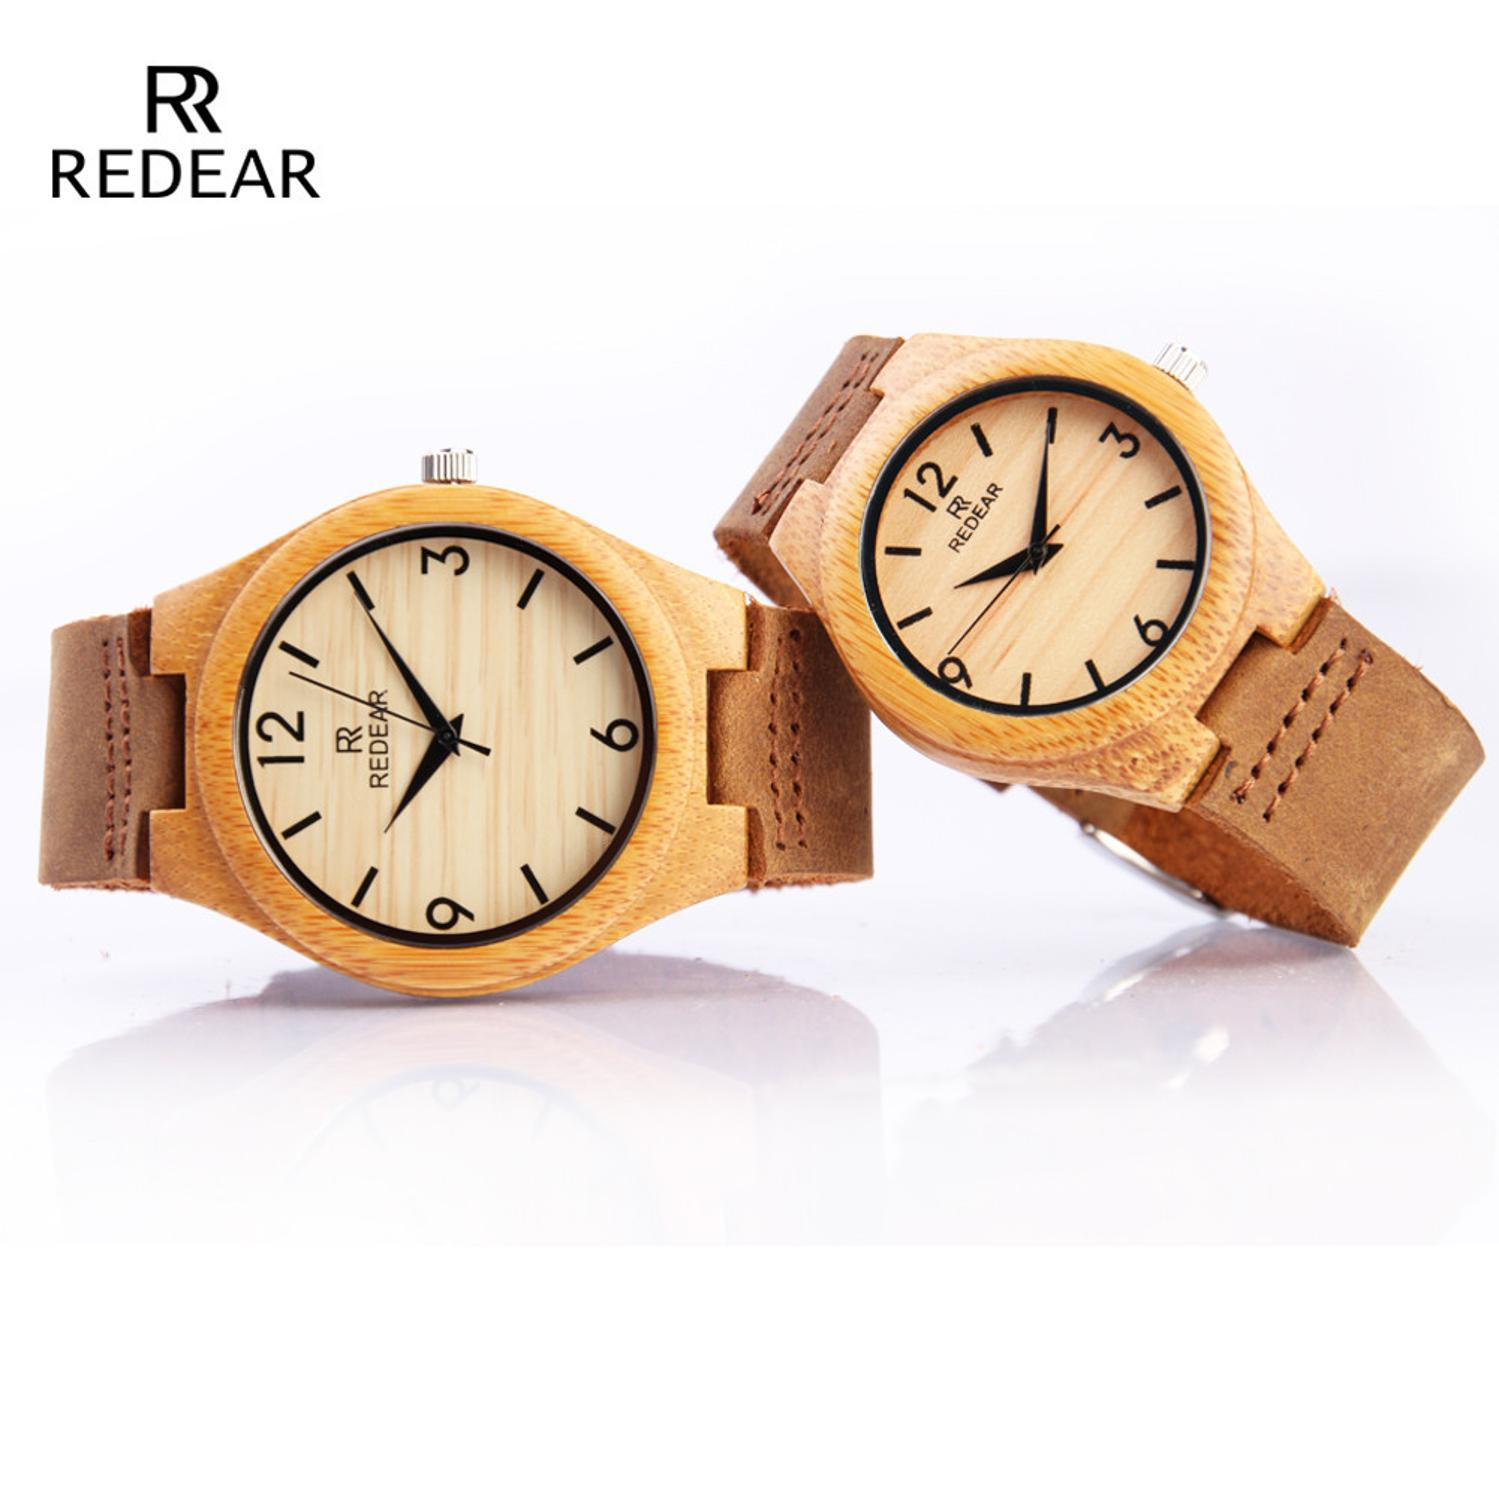 Redear Bamboo Couple Watches 2020 Luxury Brand Handmade Wooden Women Watch Men Quartz Wristwatches Leather Relojes Hombre Gift